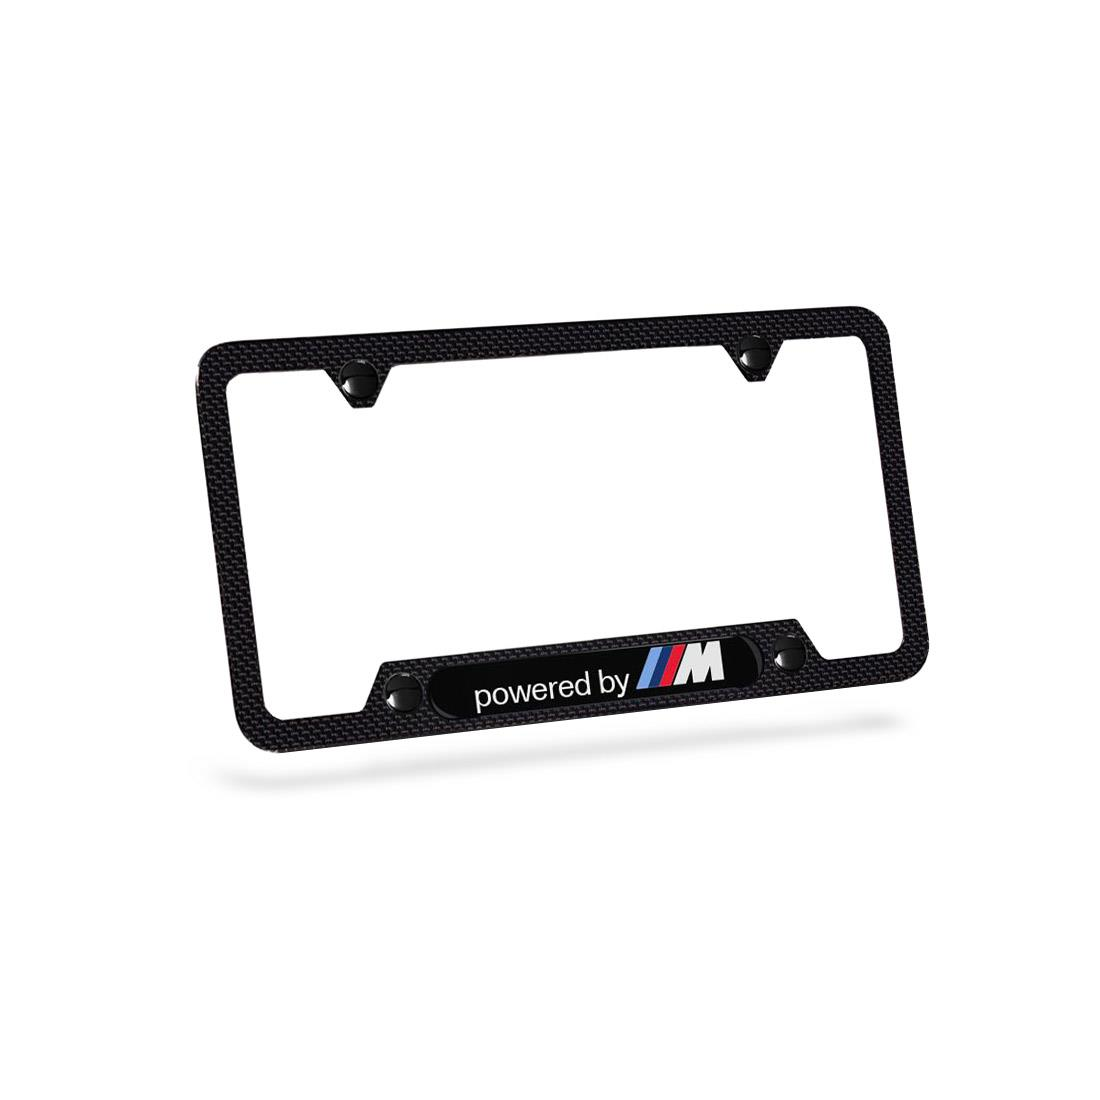 BMW Powered by M Carbon Fiber License Plate Frame